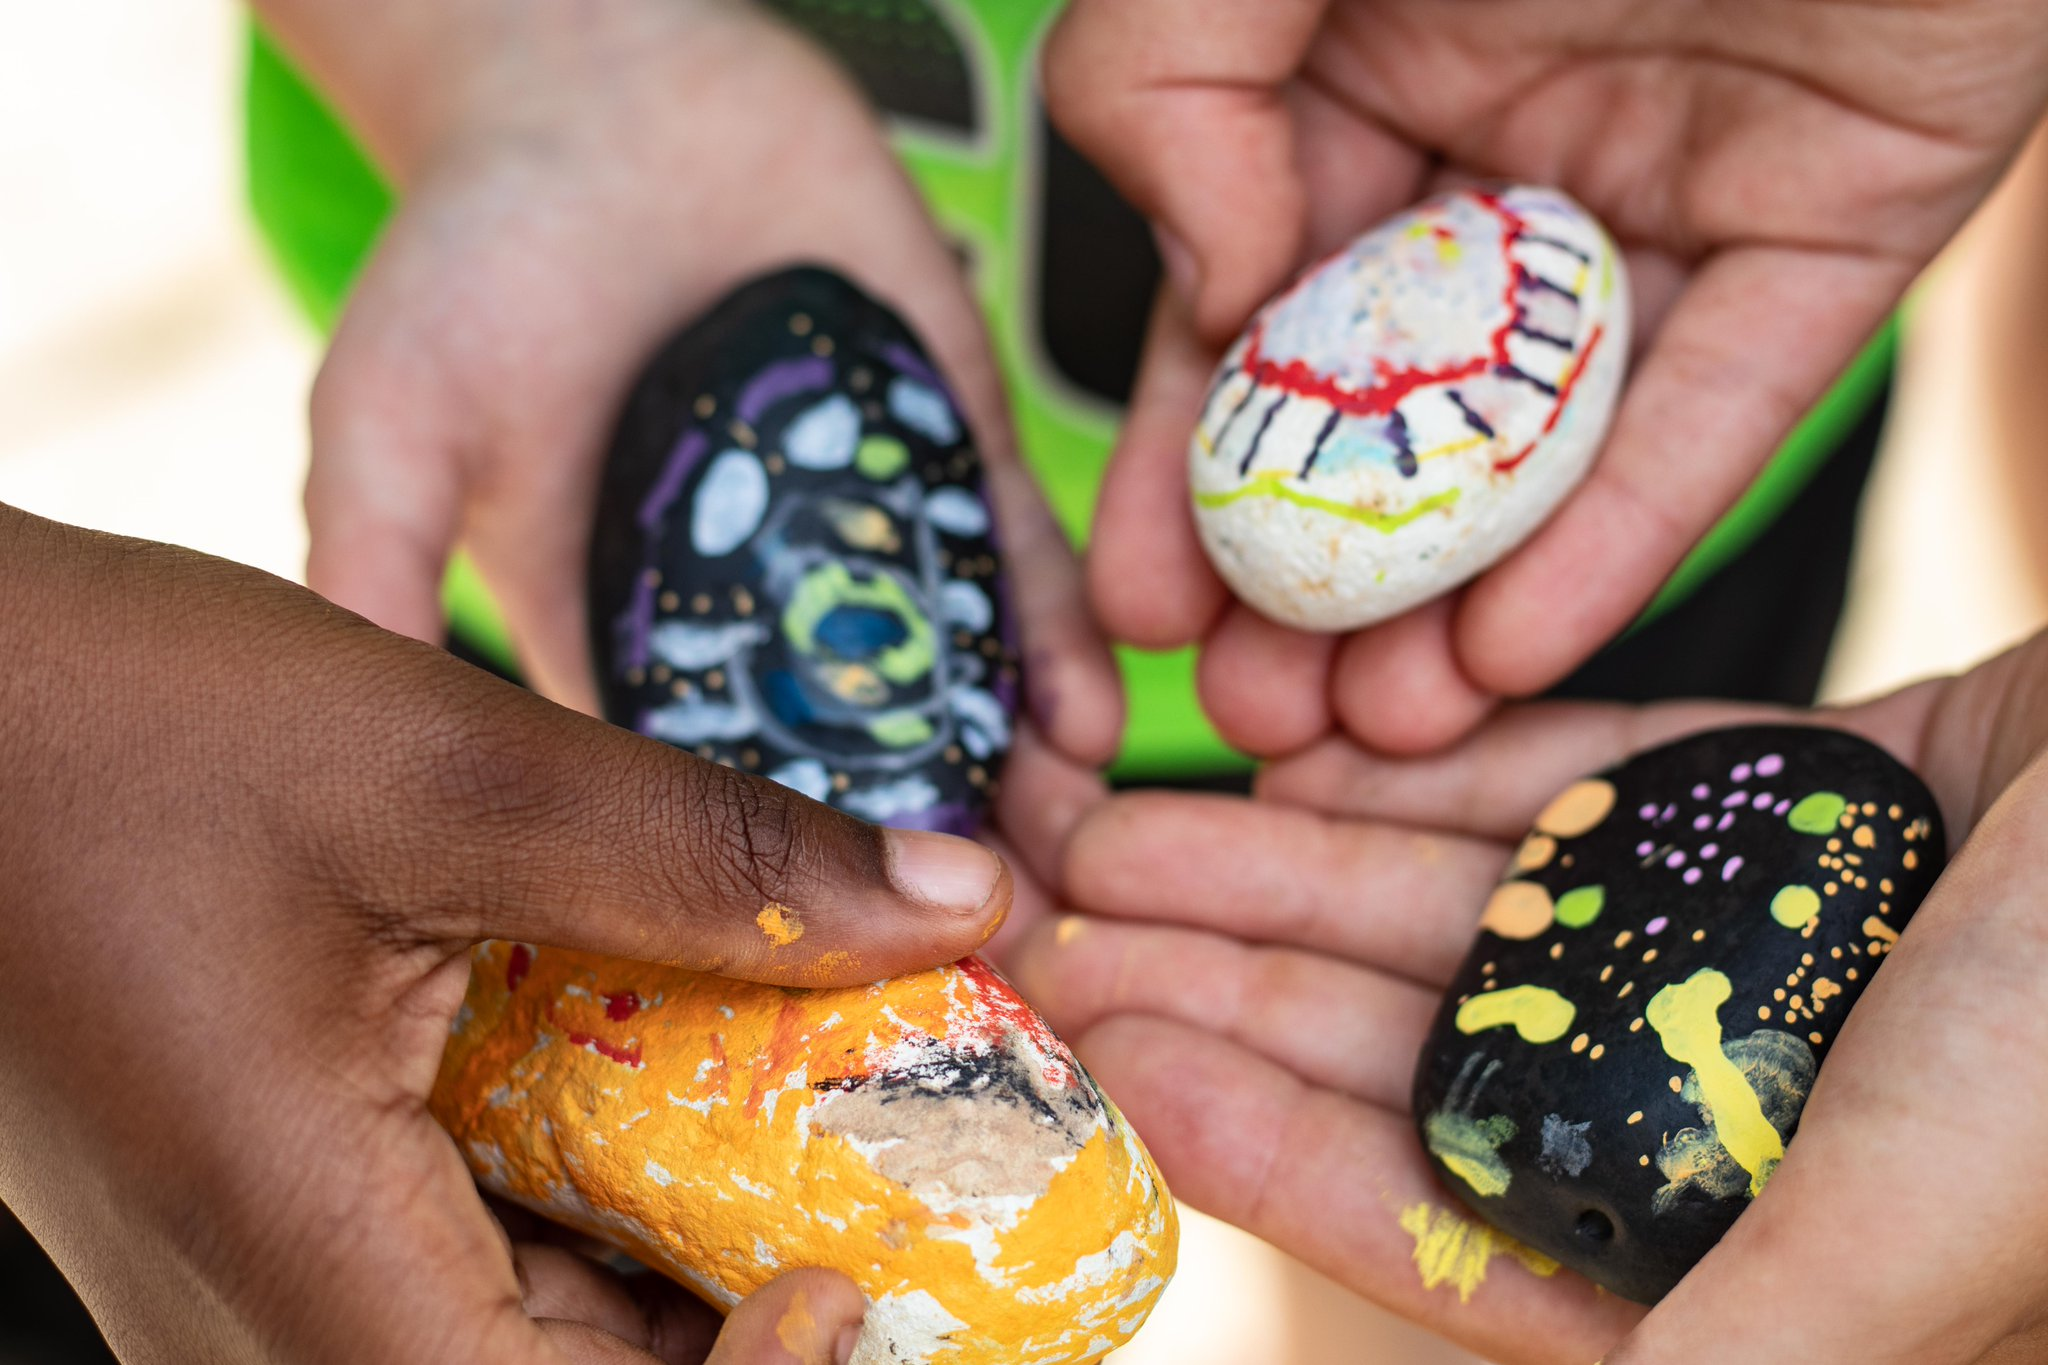 Uzivatel Jcfs Chicago Na Twitteru We Are Delighted By The Creativity Of Our Hinaynee Summer Program Campers And Their Painted Rocks The Rock Painting Is Part Of An Activity Designed To Help